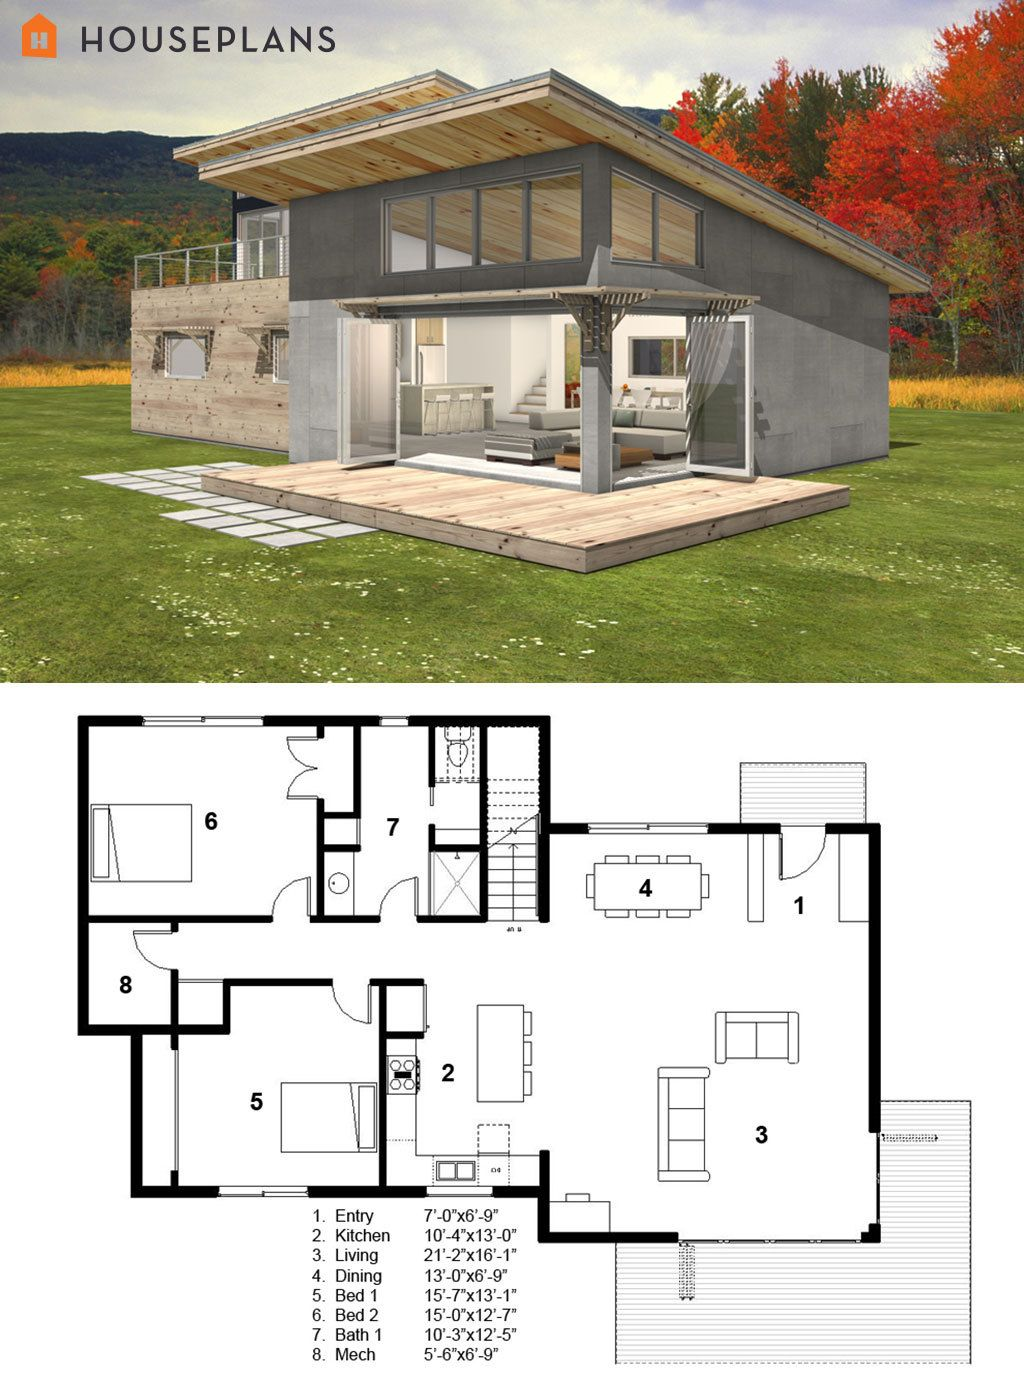 Small modern cabin house plan by freegreen energy for Cost to build modern home